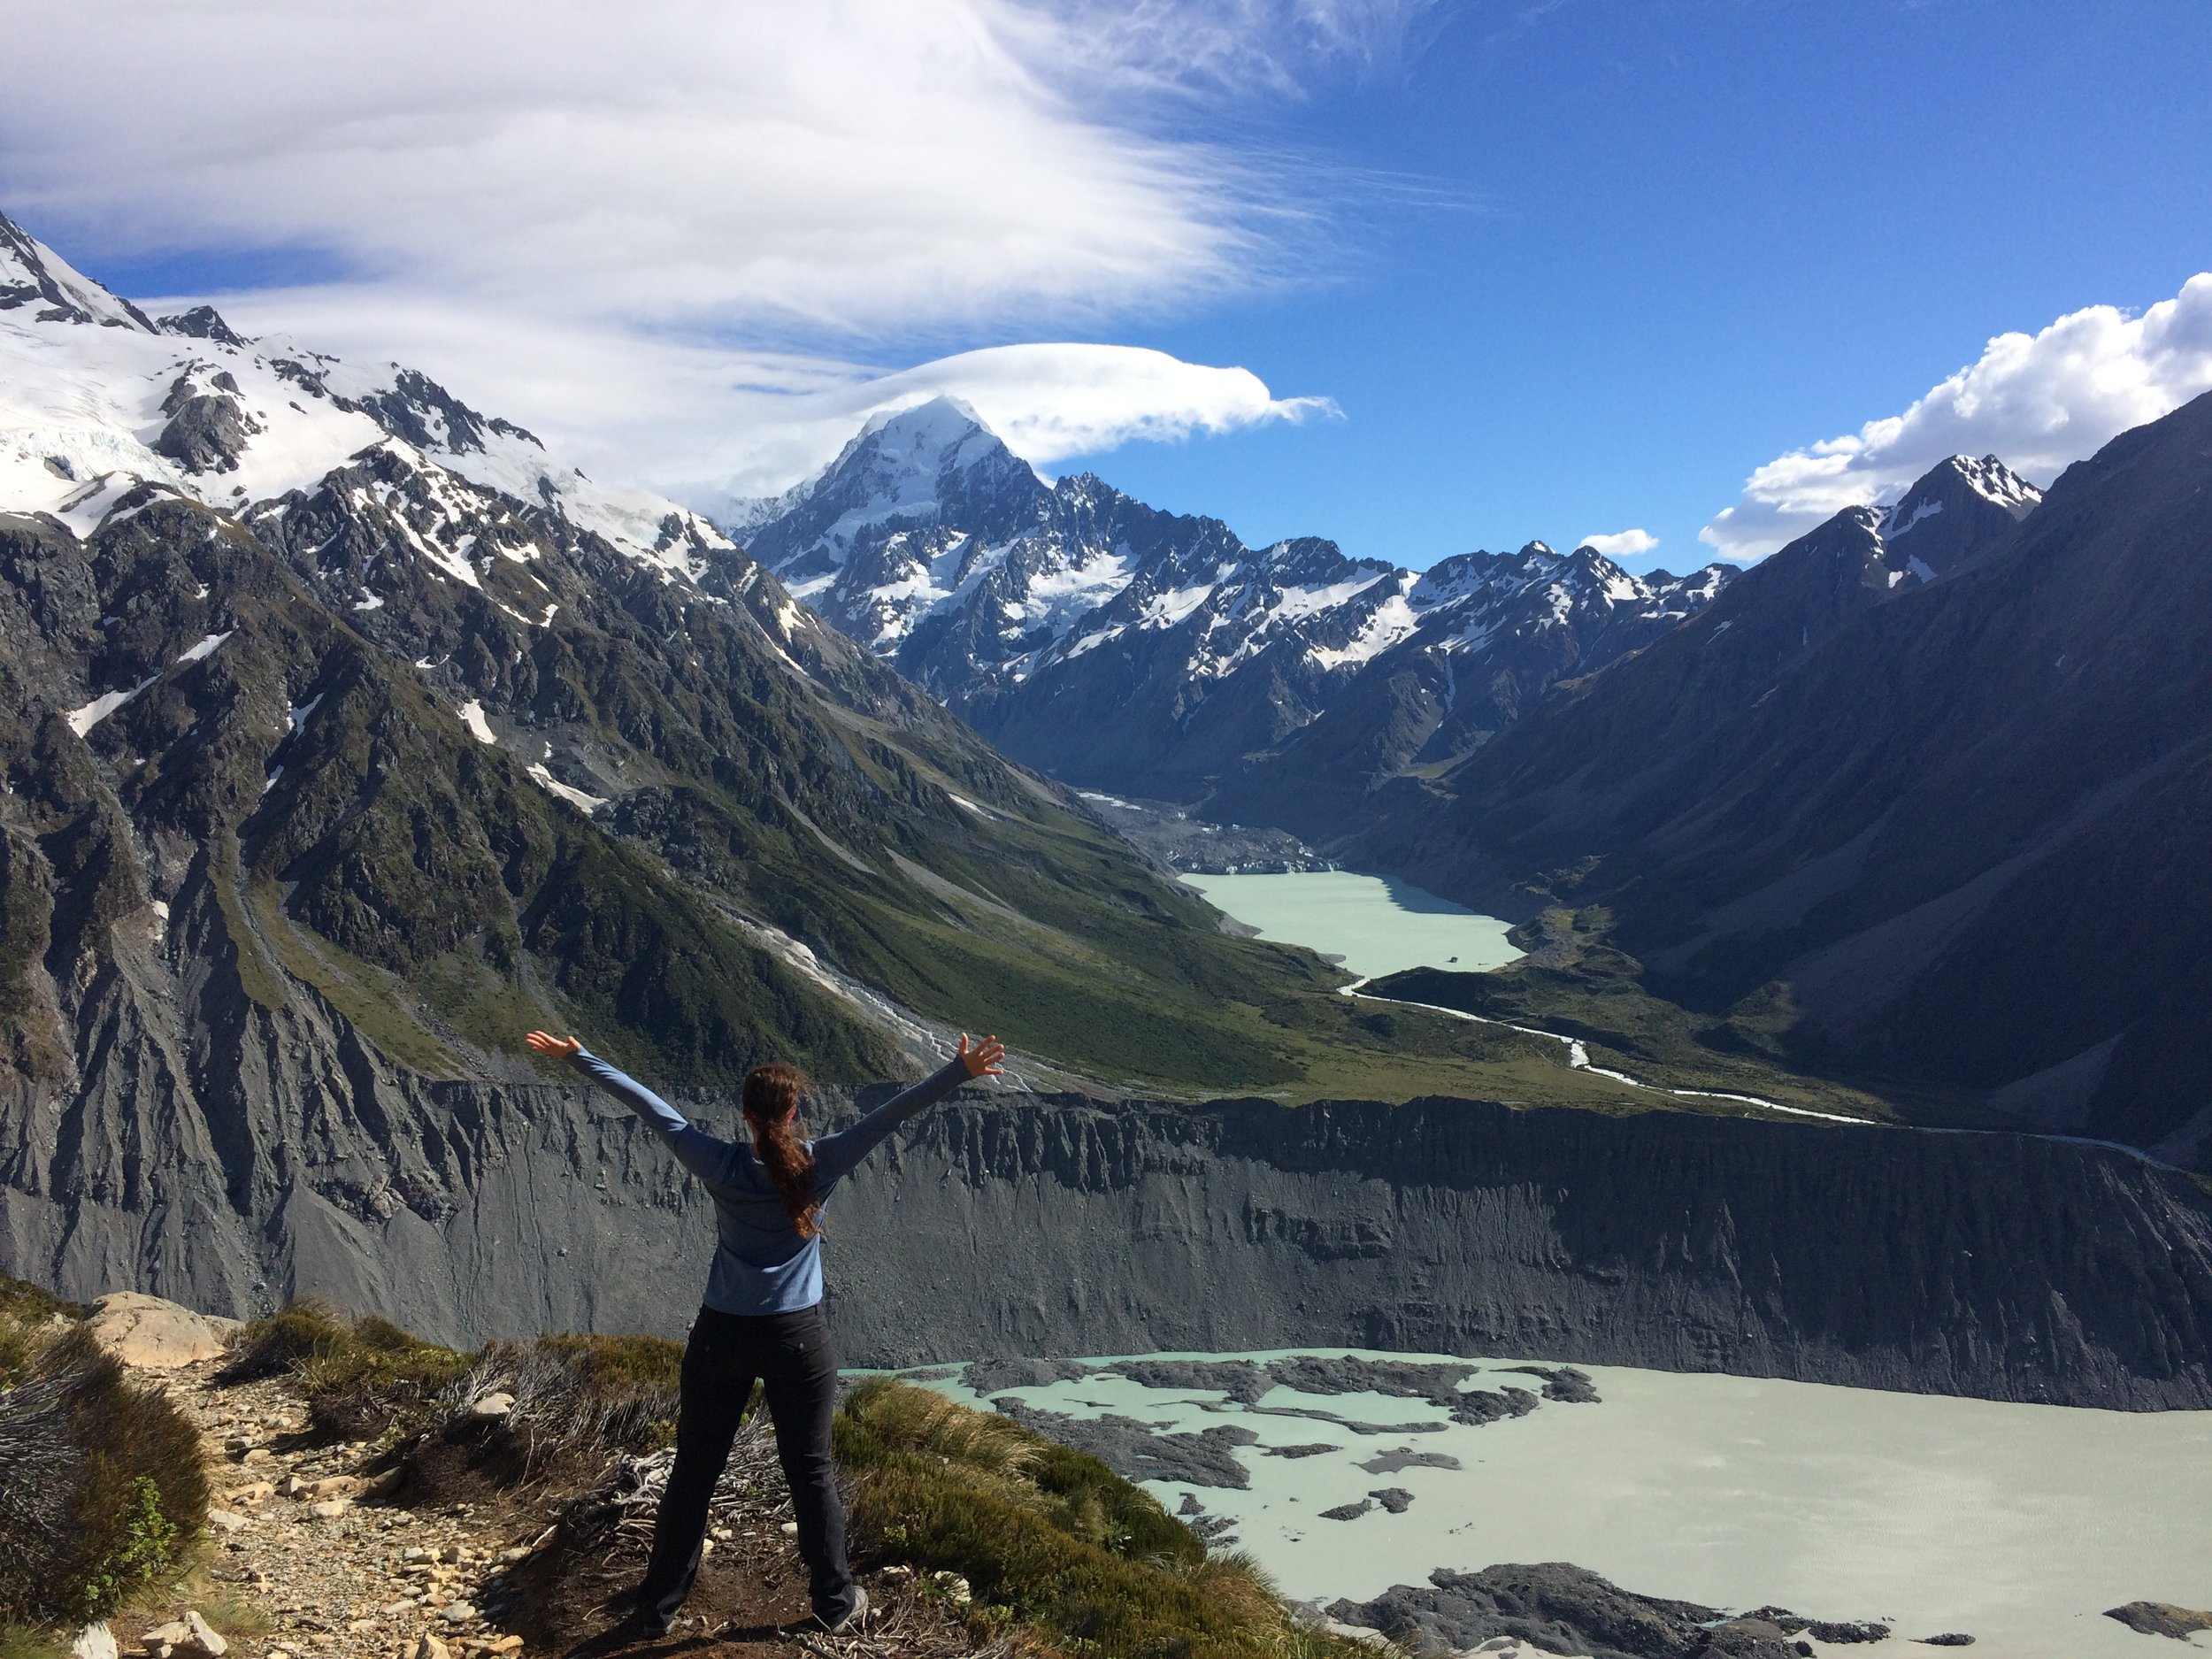 Views from the Saaly Tarns track, a 2200 ft climb, Mount Cook National Park. Hello mountains!